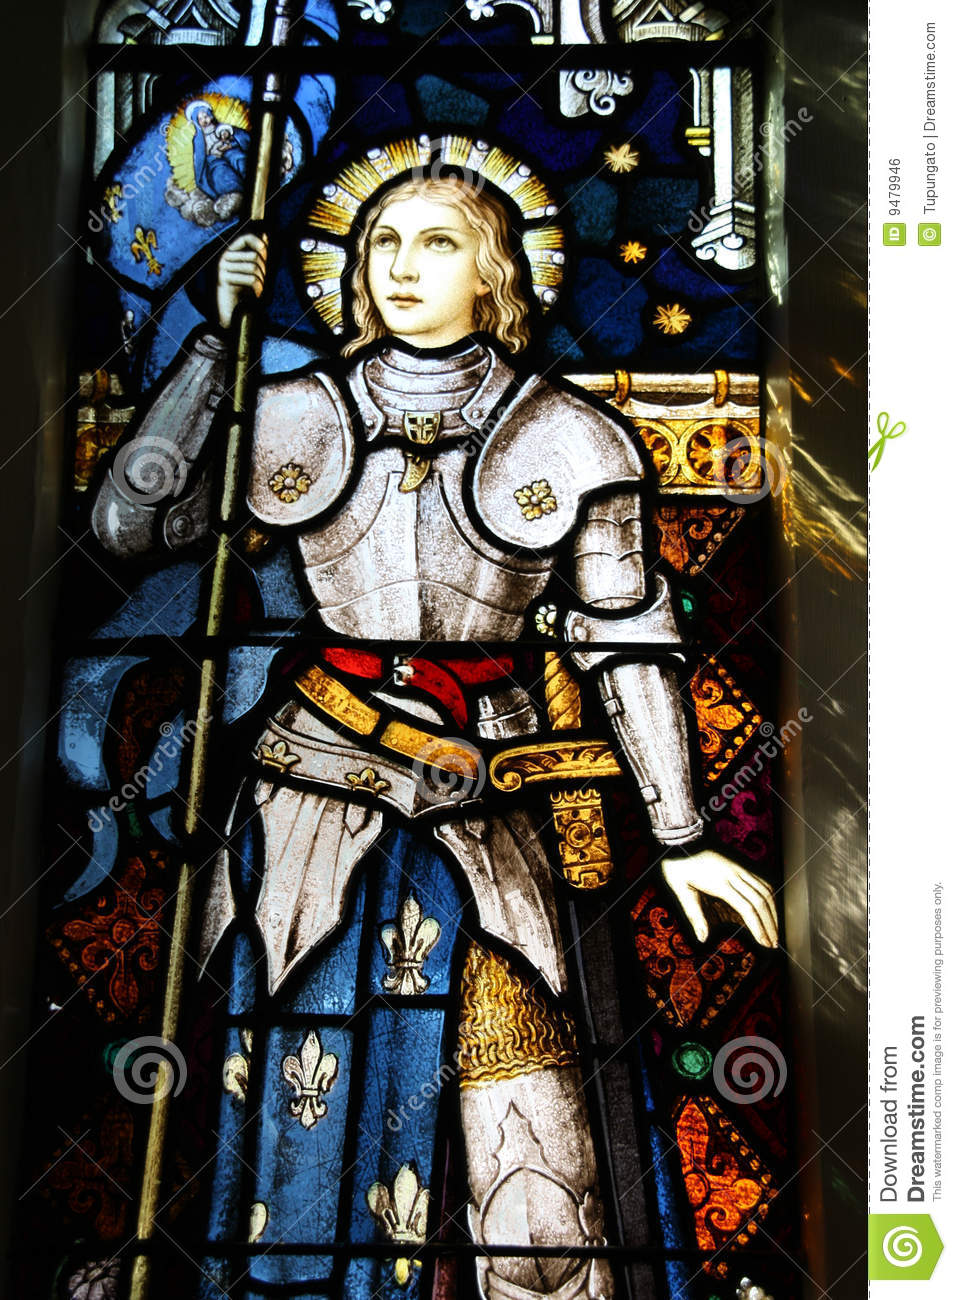 """a biography of joan of arc a heroine of france and a roman catholic saint And is considered one of france's greatest heroines called, """"the maid of  orléans  the roman catholic church canonized her after declaring her  innocent of  or joan d'arc, was born sometime around 1412 in domrémy in  eastern france  she testified that she saw saint margaret, saint michael, and  saint catherine,."""